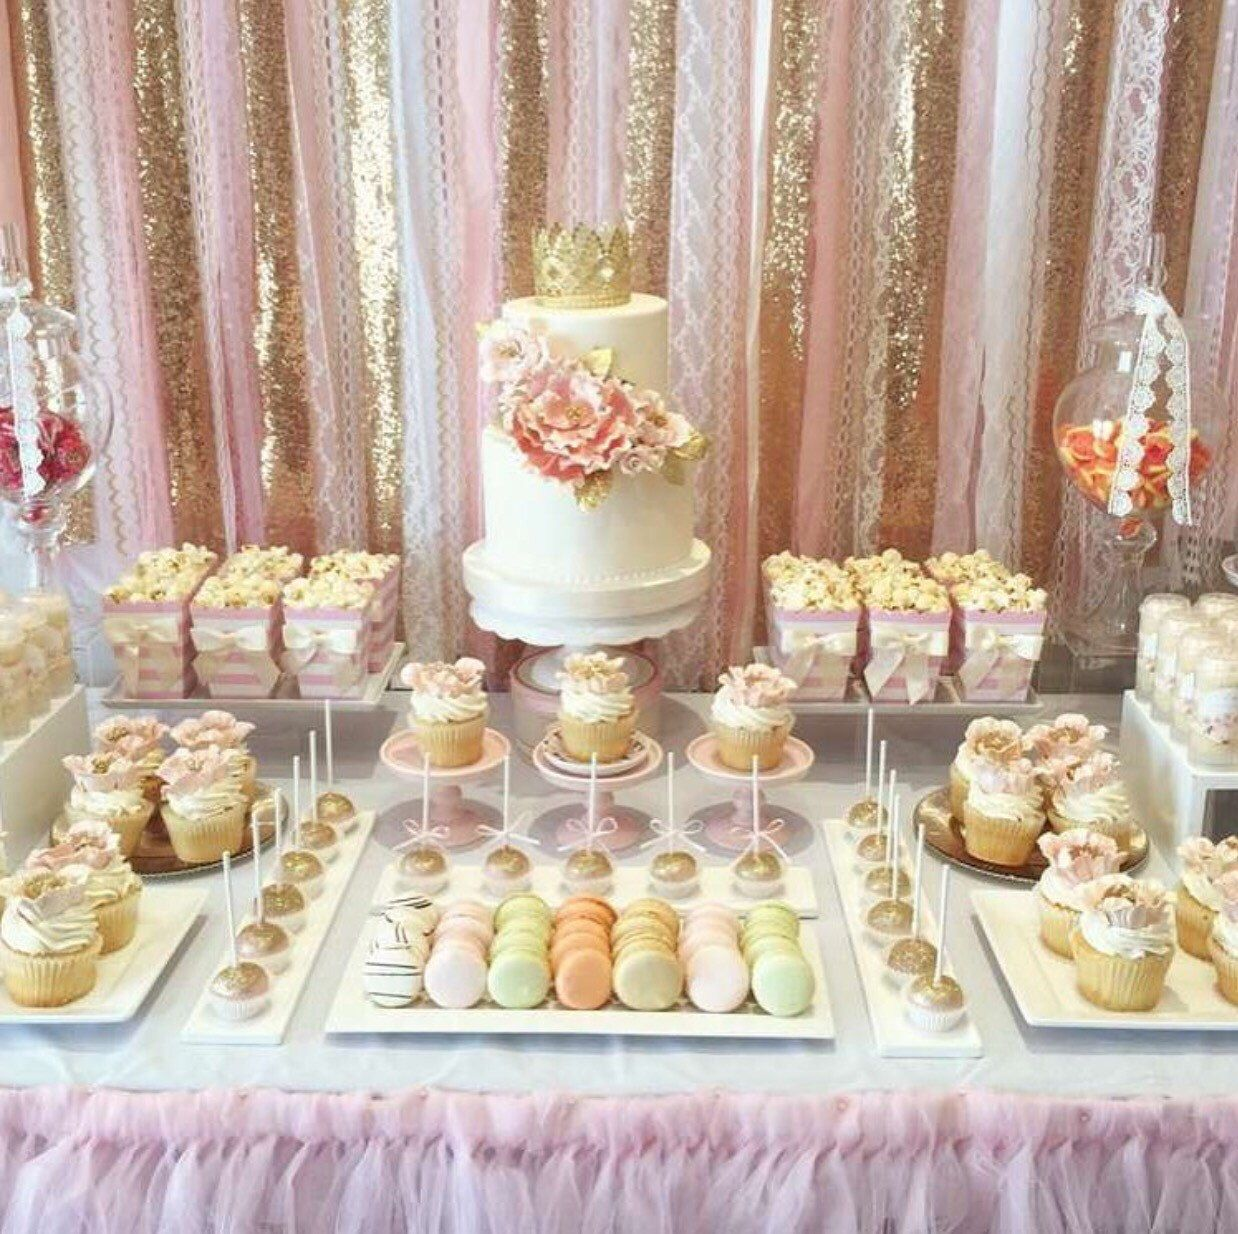 Wedding decorations gold and pink  A personal favorite from my Etsy shop sylisting